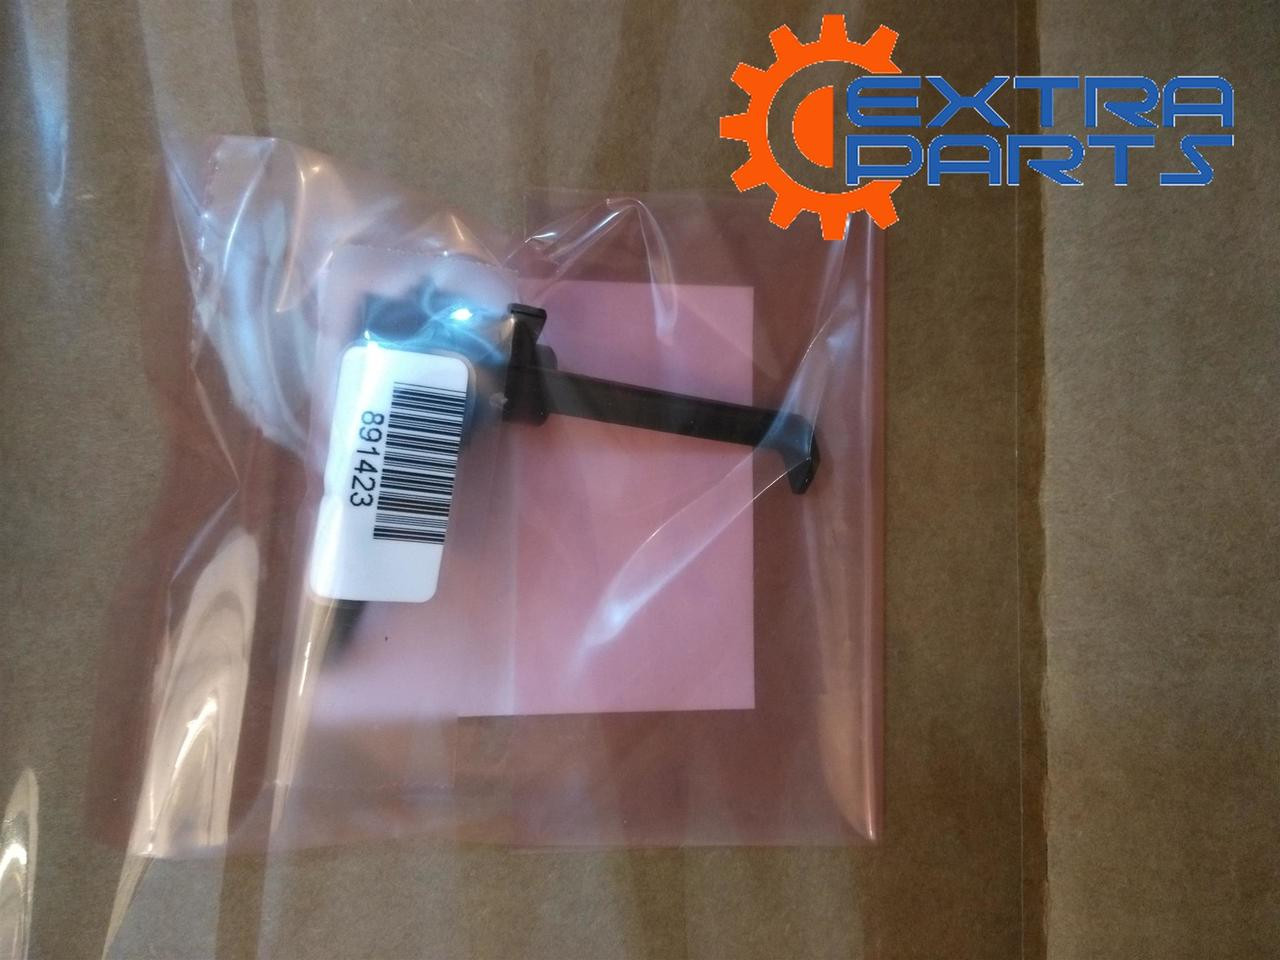 Rm2 5375 For Hp Laserjet M402 M403 M426mfp M427mfp Tray 2 Sensor Pick Up Roller 1 P2035 P2055 M401 Assembly